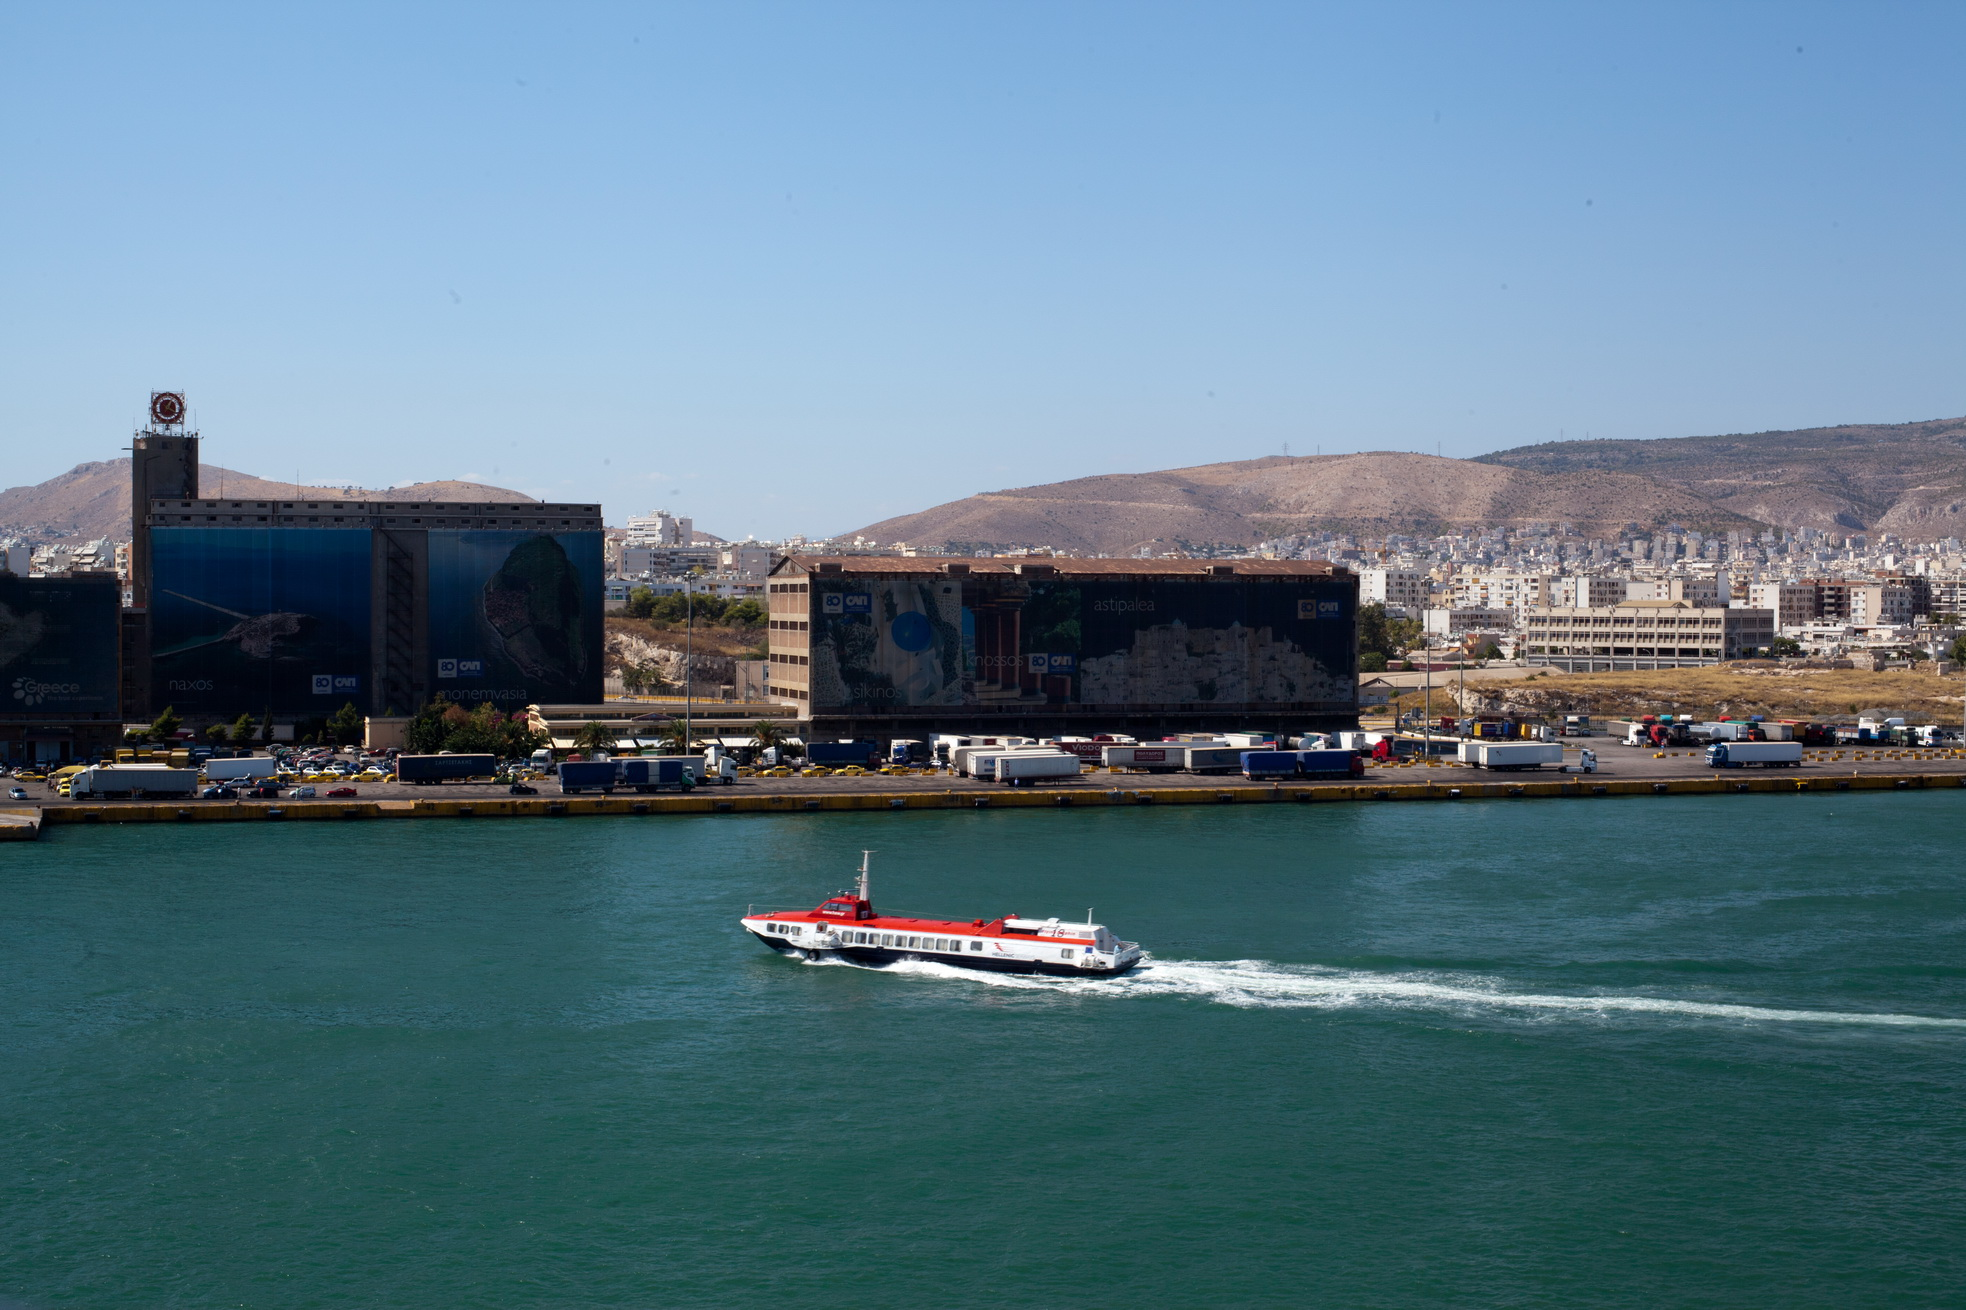 MS Flying Dolphin 18 IMO 8331479 Hellenic Seaways leaving Piraeus Port of Athens Greece 01